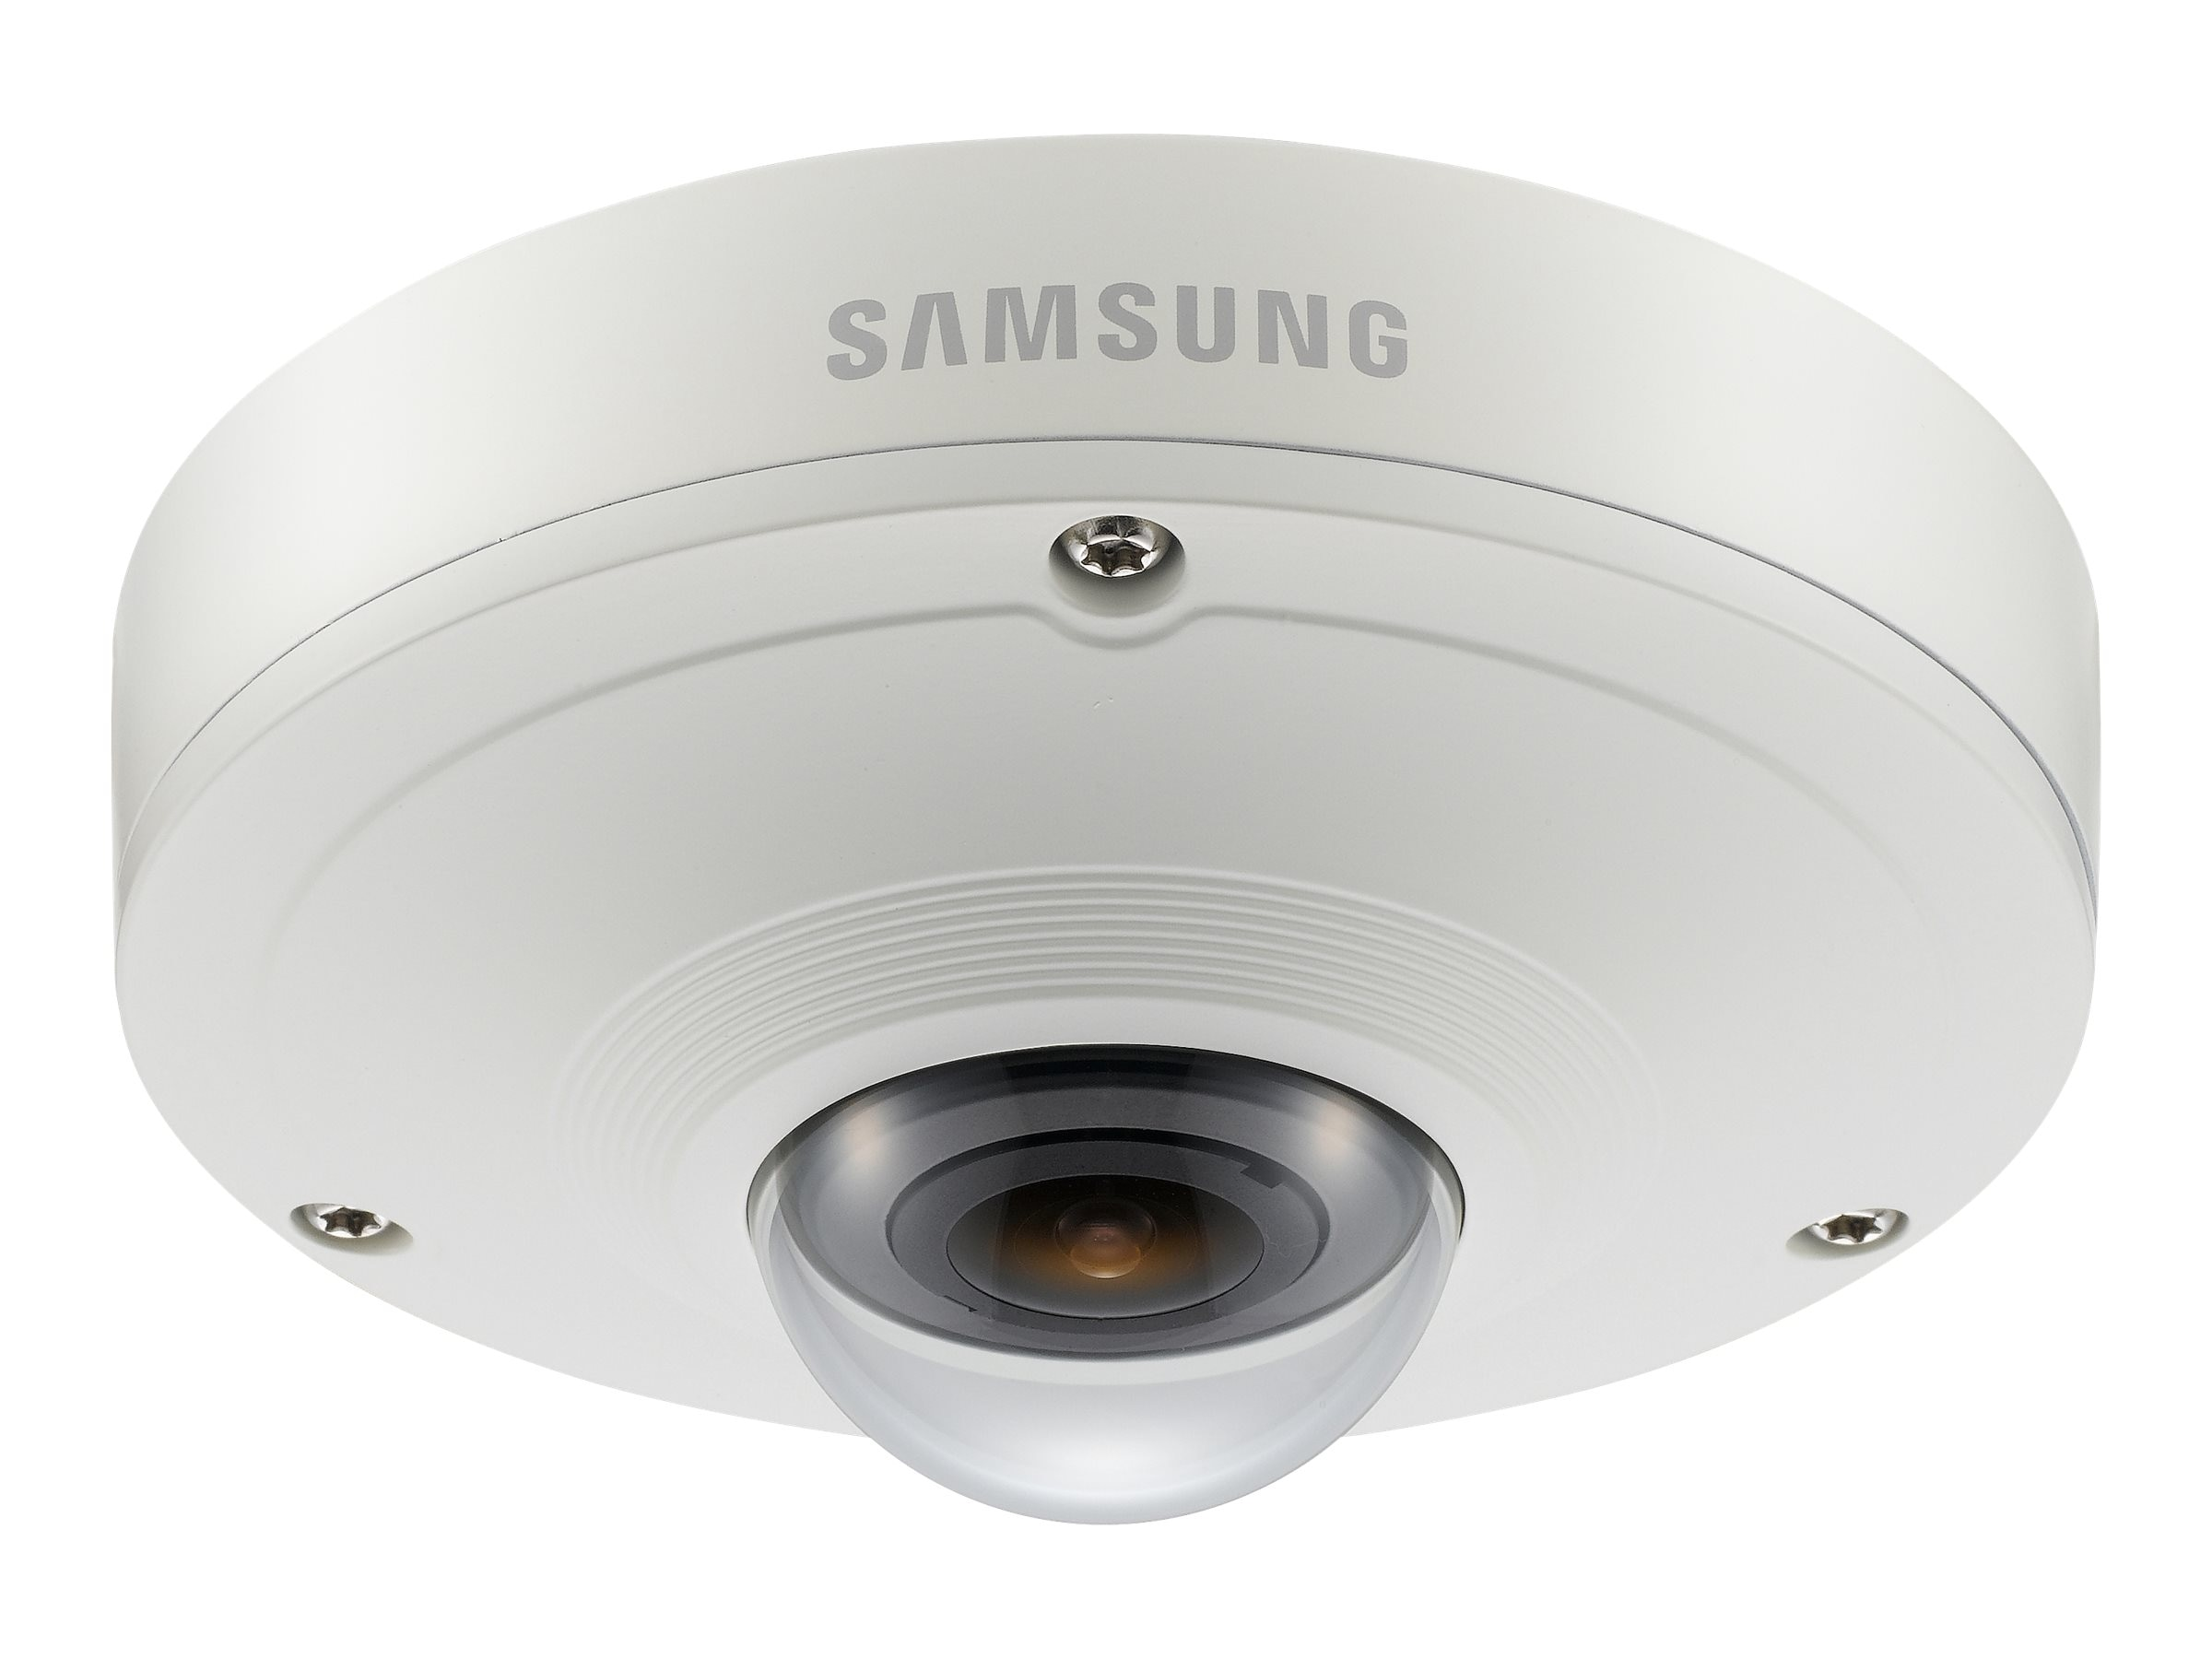 Samsung 5MP 360 Degree Vandal-Mobile Fisheye Camera, SNF-8010VM